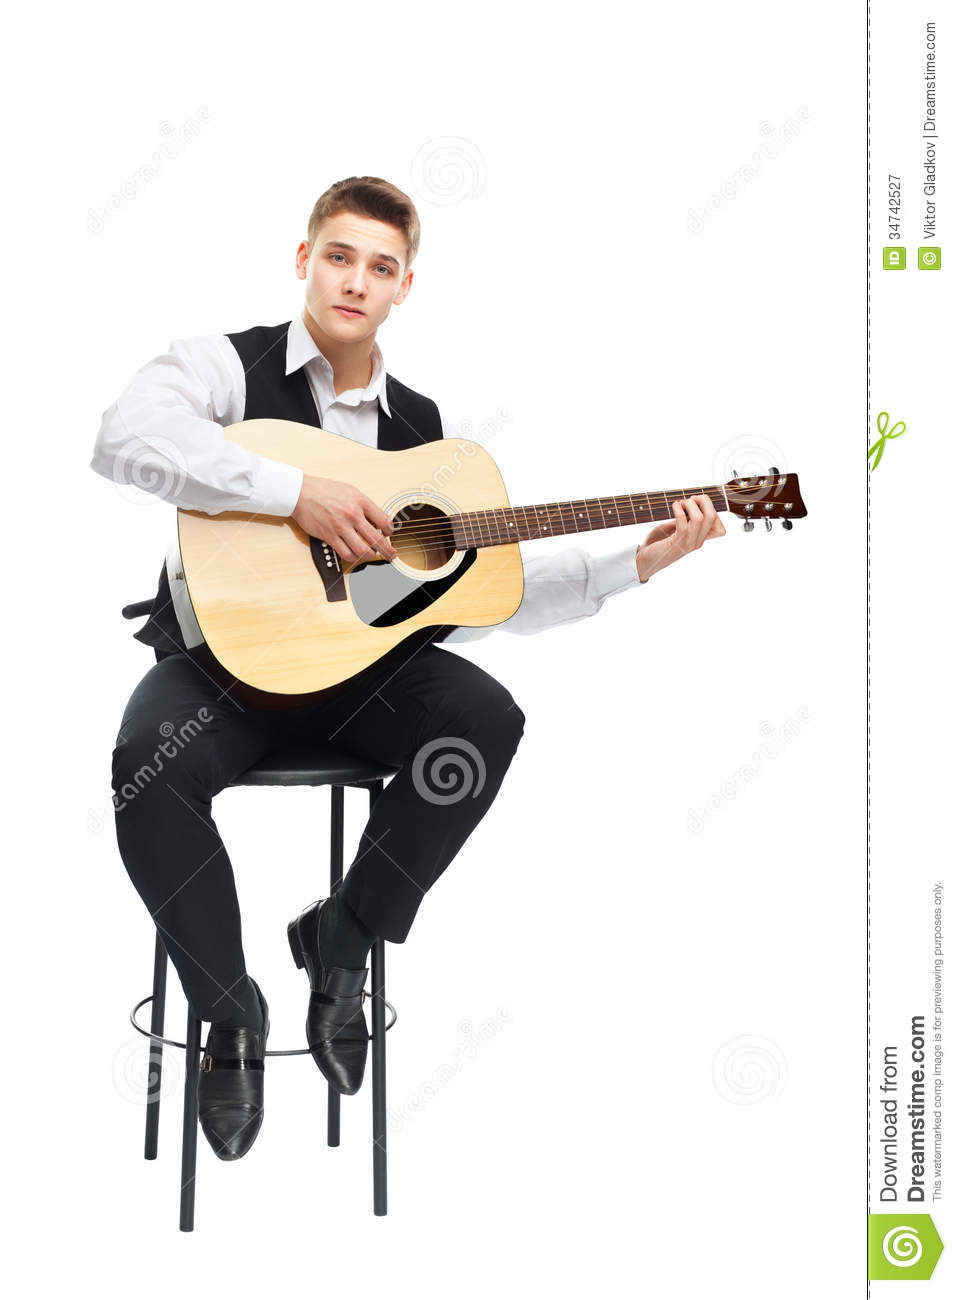 classical guitar chair steelcase leap young man playing on acoustic stock image - image: 34742527